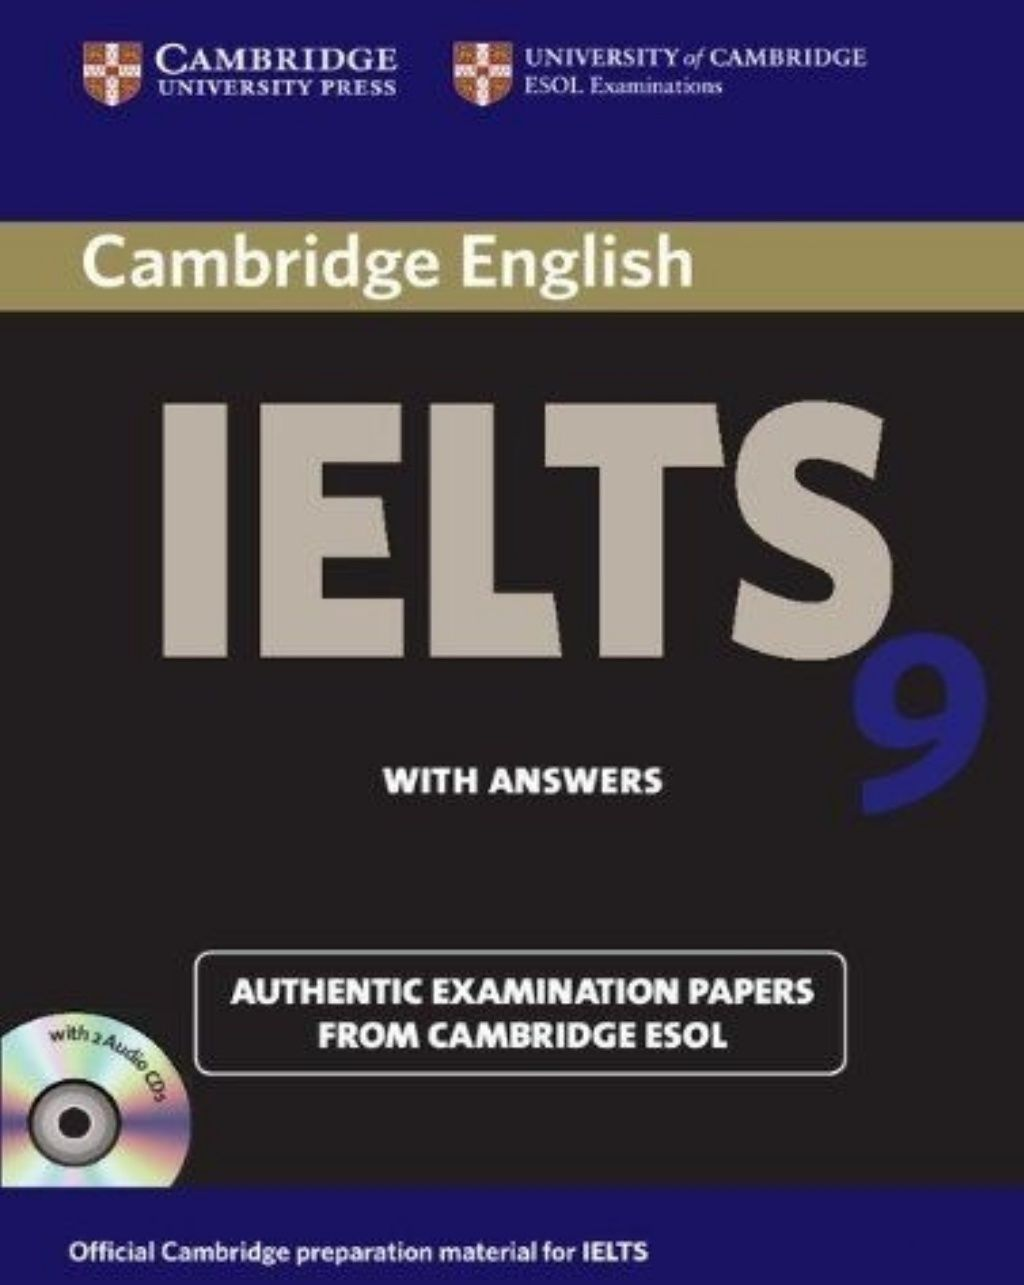 Libros Para Aprender Ingles Gratis Cambridge Ielts 9 With Answers By Iat Uae Via Slideshare Keep Up